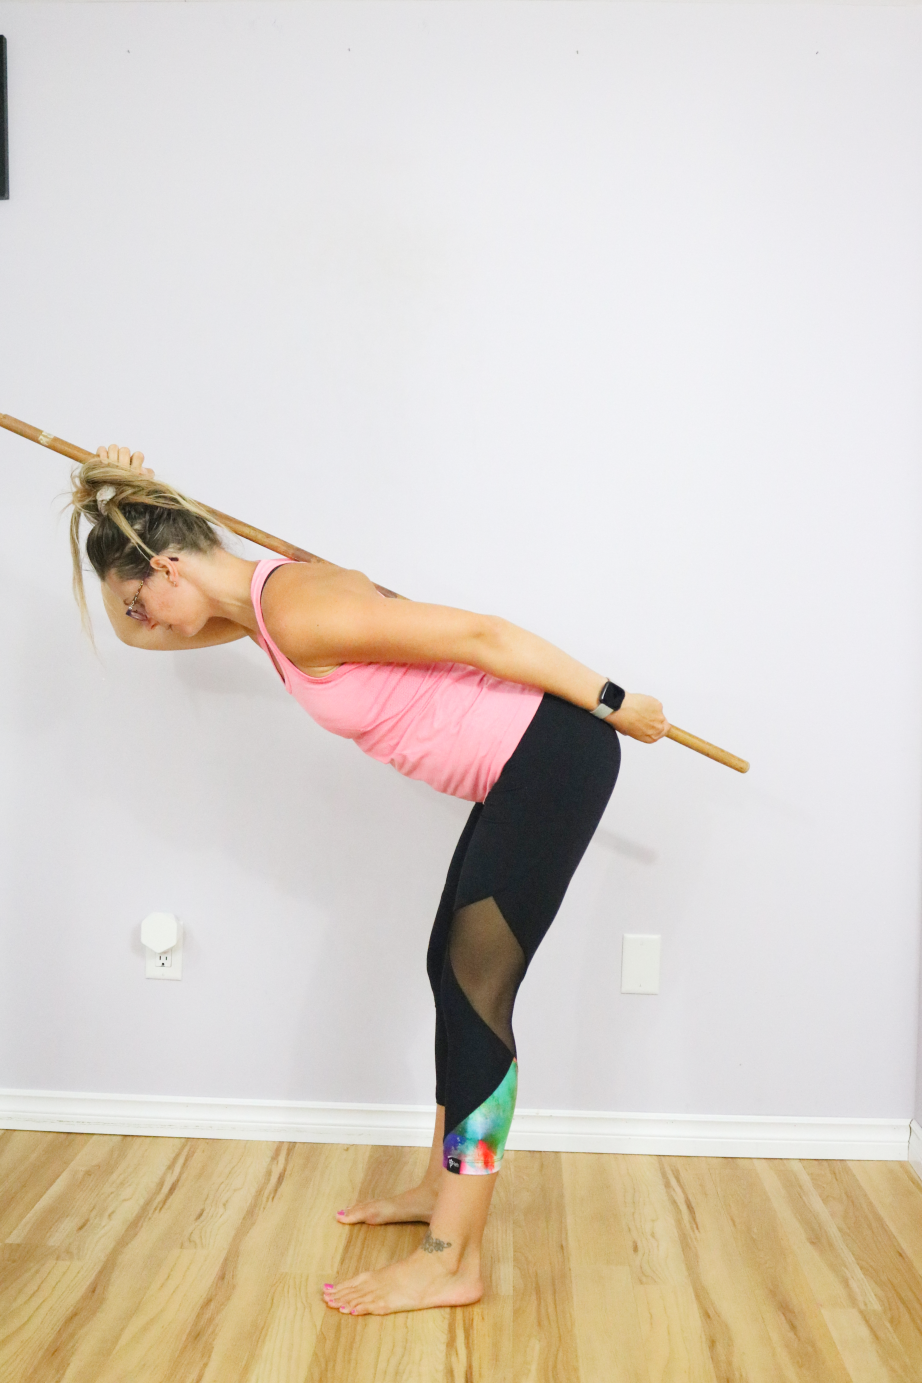 Woman in pink tank top and black pants learn how to perform a hip hinge with a dowel on her back